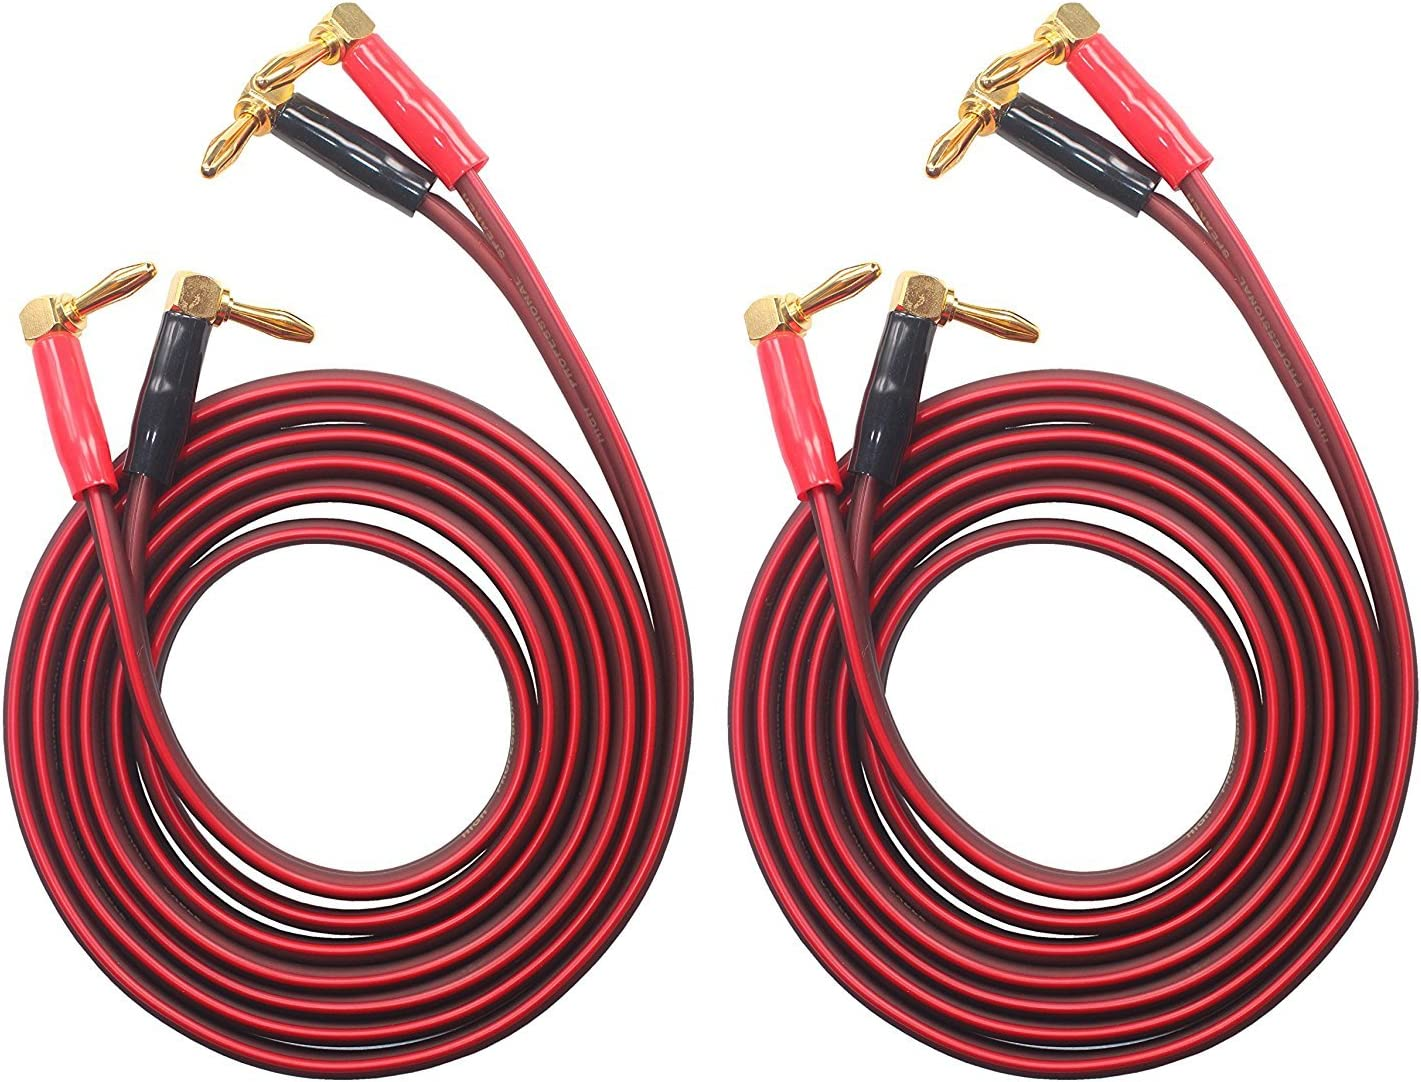 3M HiFi OFC Speaker Wire 1pair Set 8 Banana Plug KK Cable BTK-4 Right Angle Banana Plug to Right Angle Banana Plug BTK-4 9.8ft